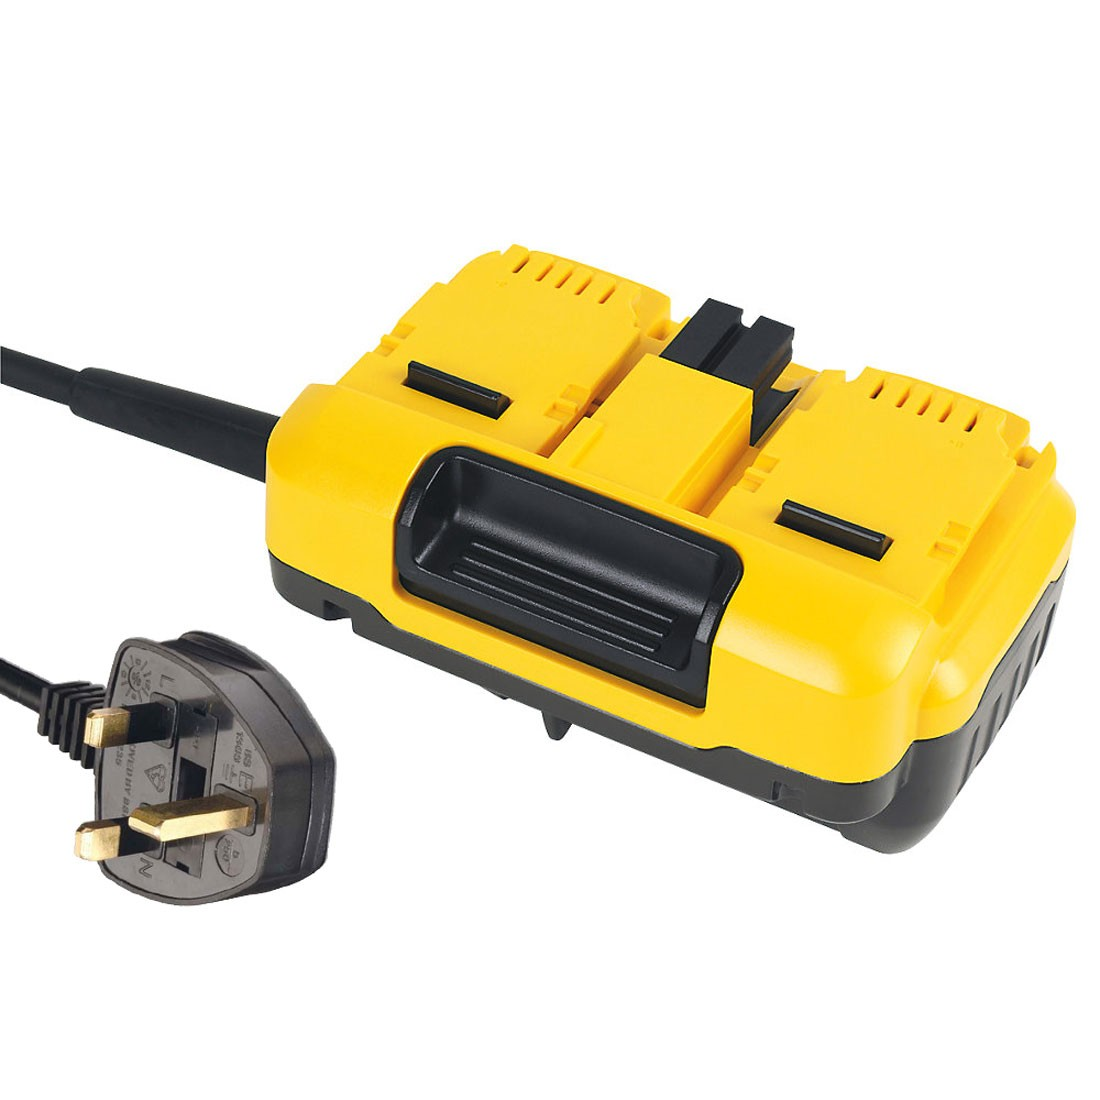 Dewalt_DCB500-GB_Adaptor for supply with AC-DC Mitre Saw 1 - Adaptor for supply with AC/DC Mitre Saw